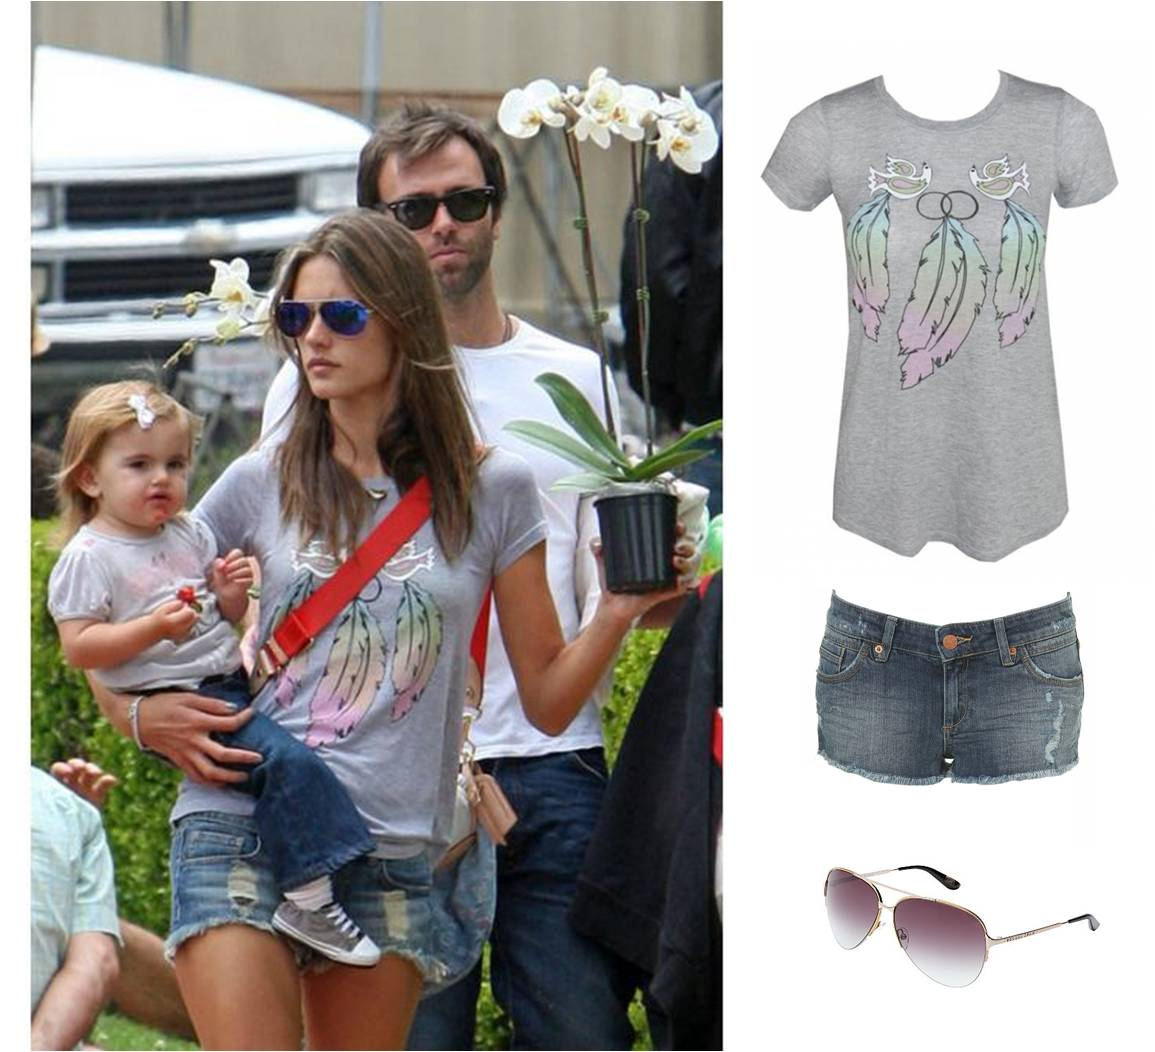 http://selfserviceuk.files.wordpress.com/2010/08/alessandra-ambrosio-steal-her-style-wildfox-and-denim.jpg